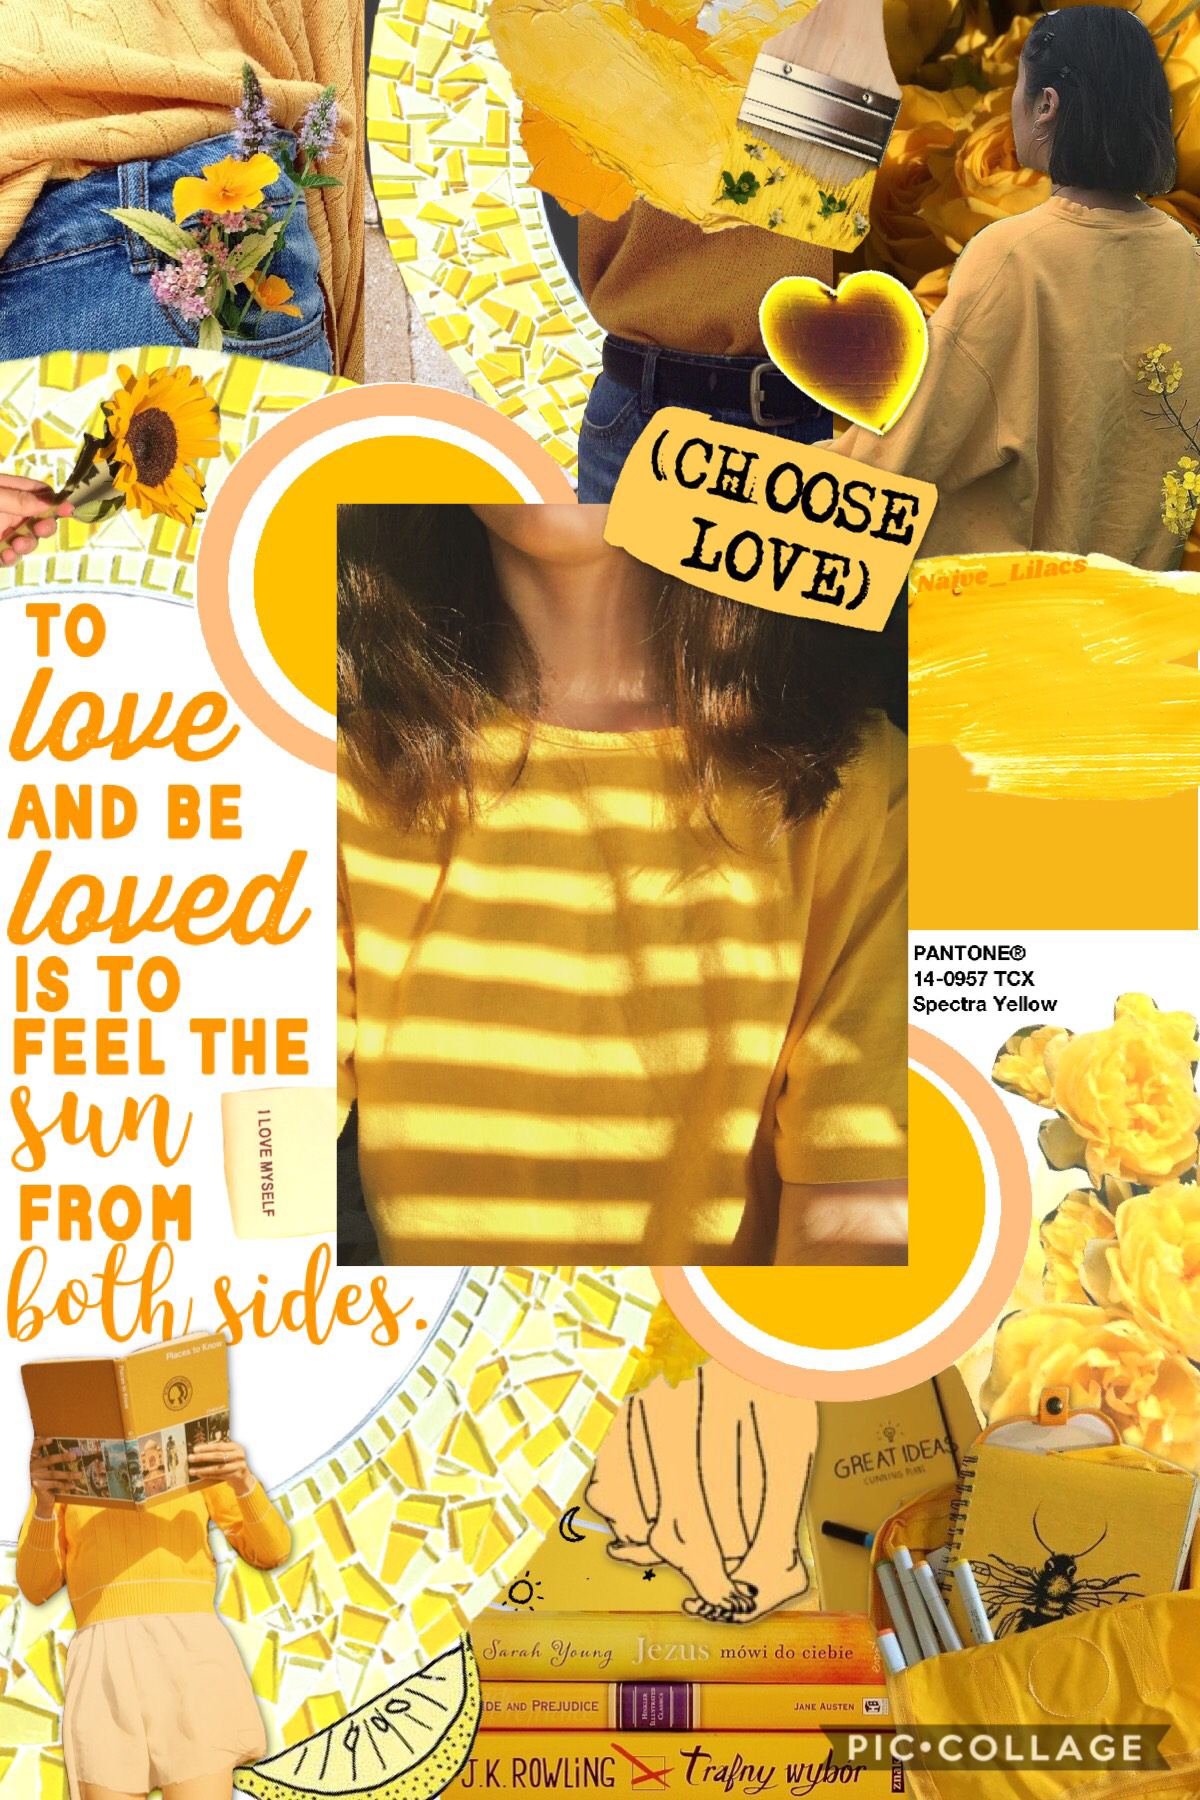 wow this took a while to make💛I made this on @ShatteredCrystal's phone😊I'm pretty proud of this🌼thoughts on this?💭